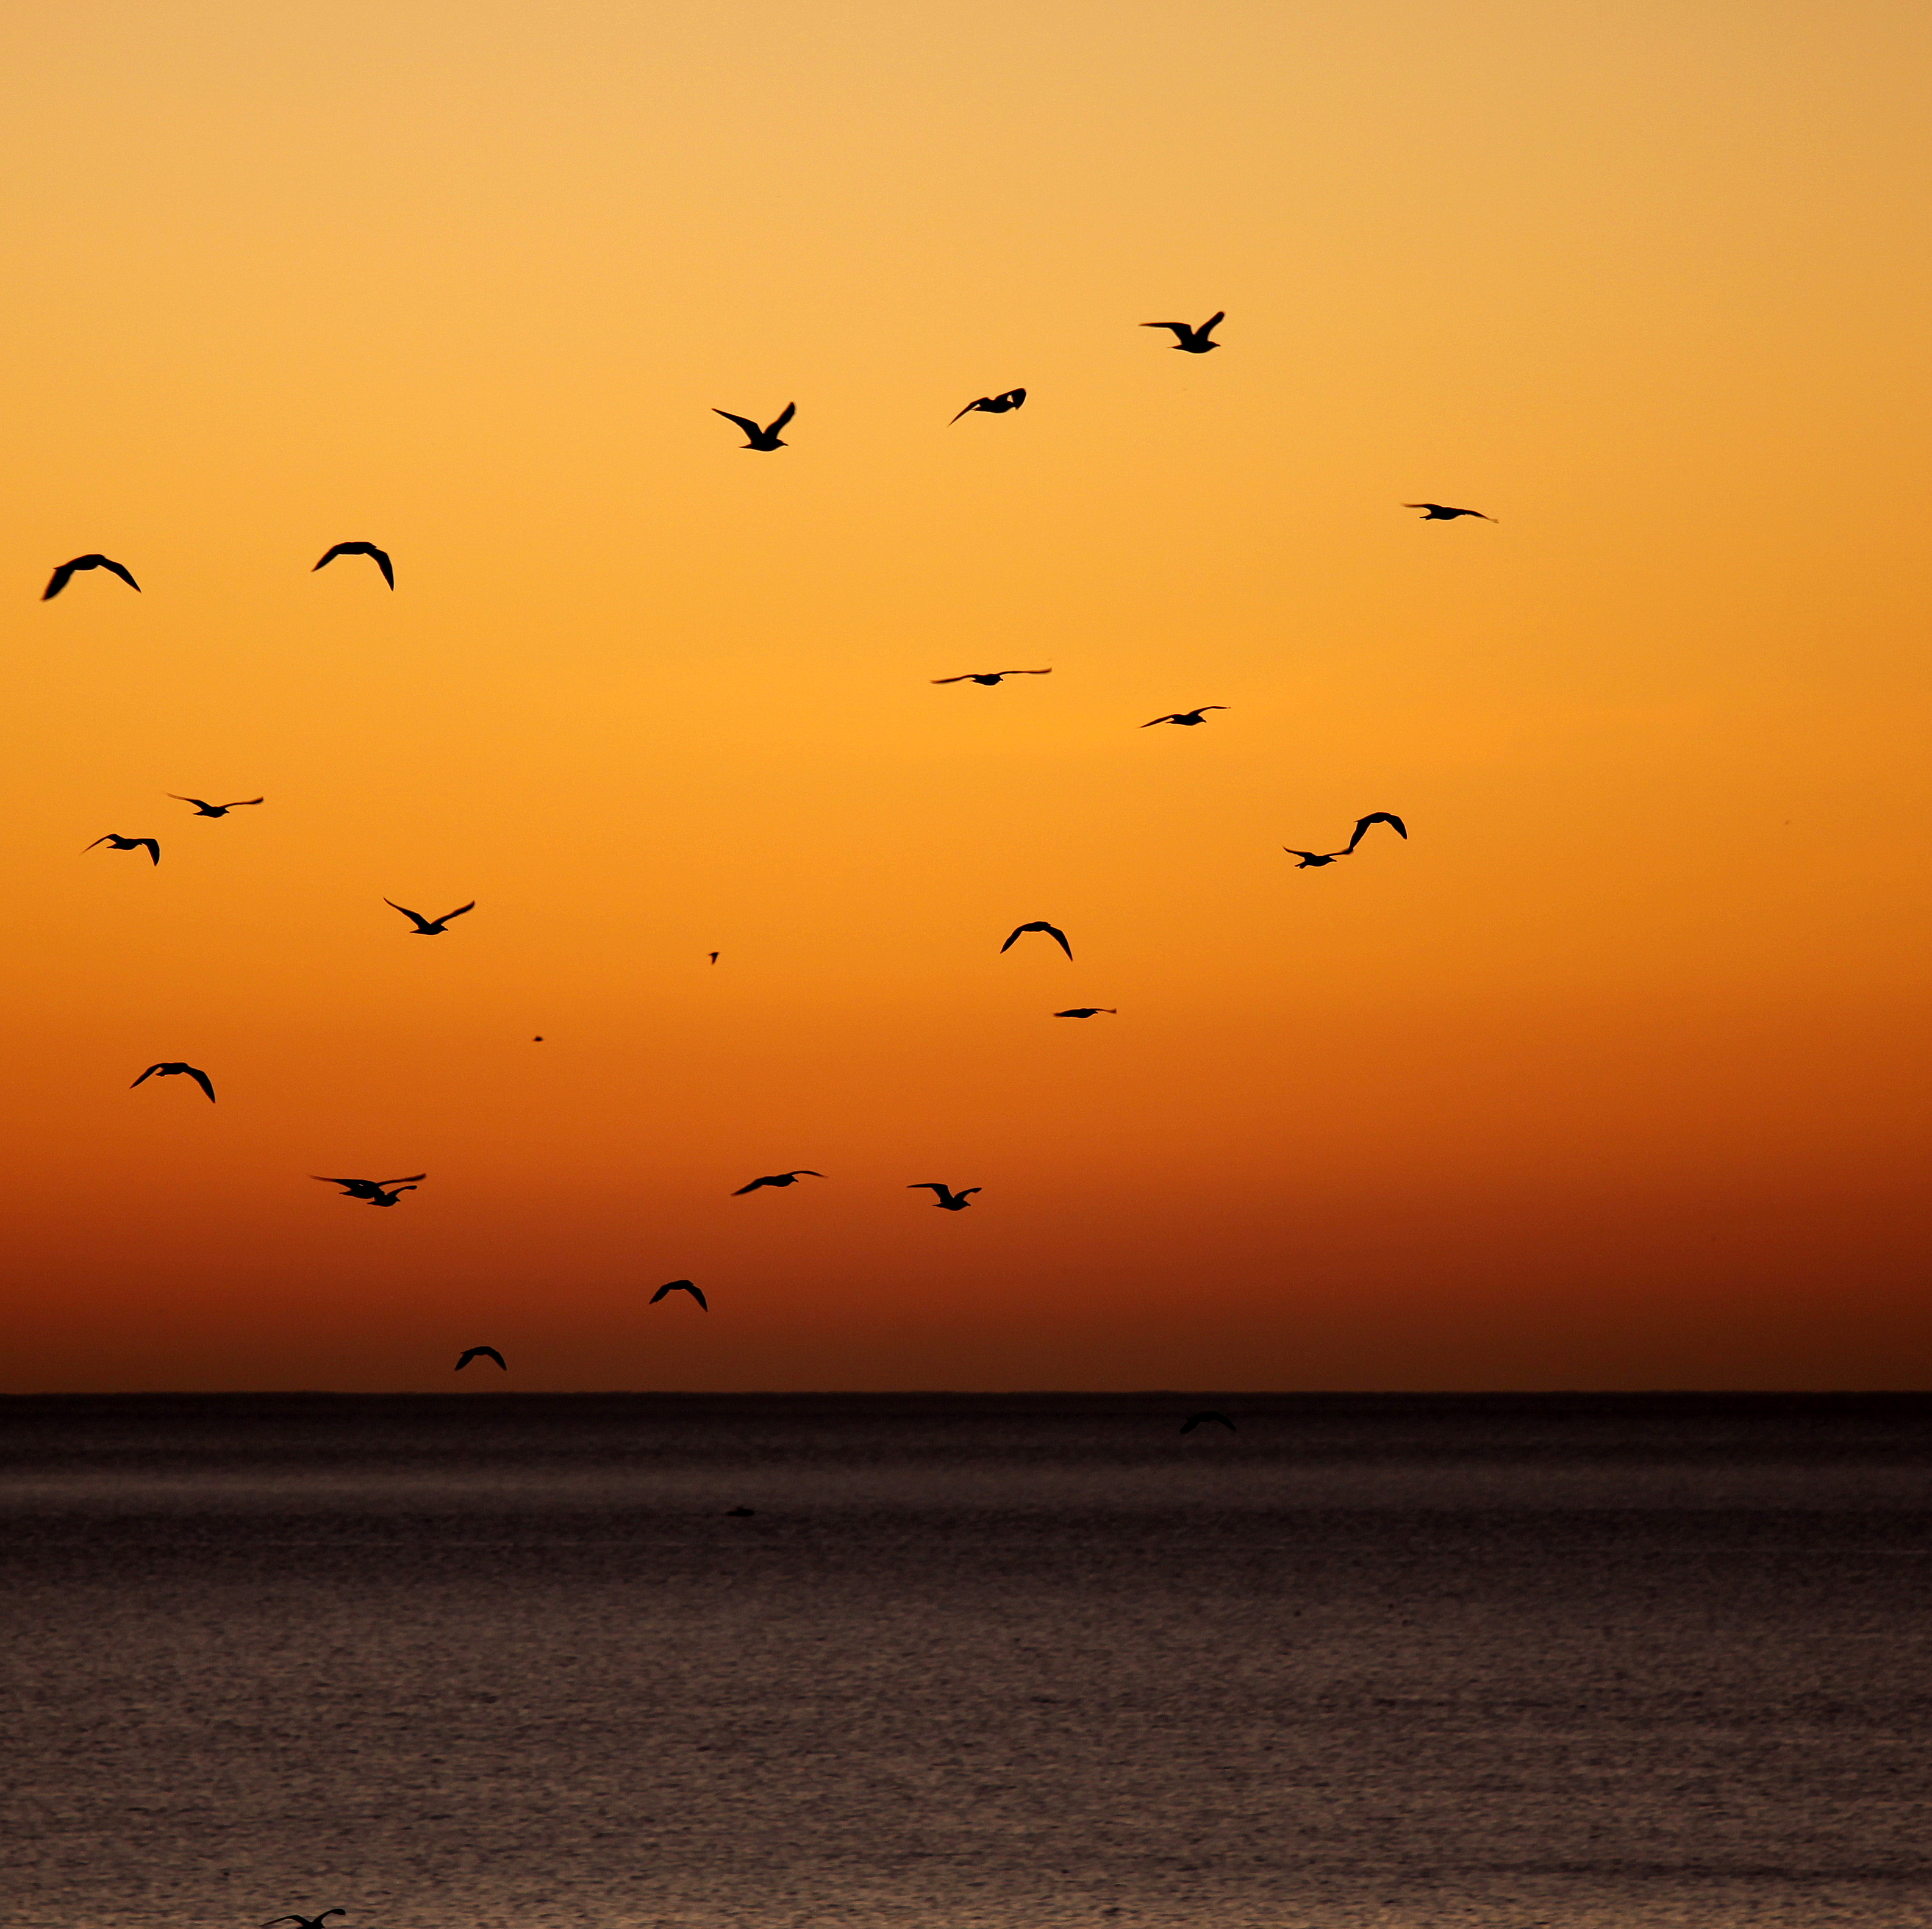 128136 download wallpaper Dark, Sunset, Sea, Horizon, Birds screensavers and pictures for free